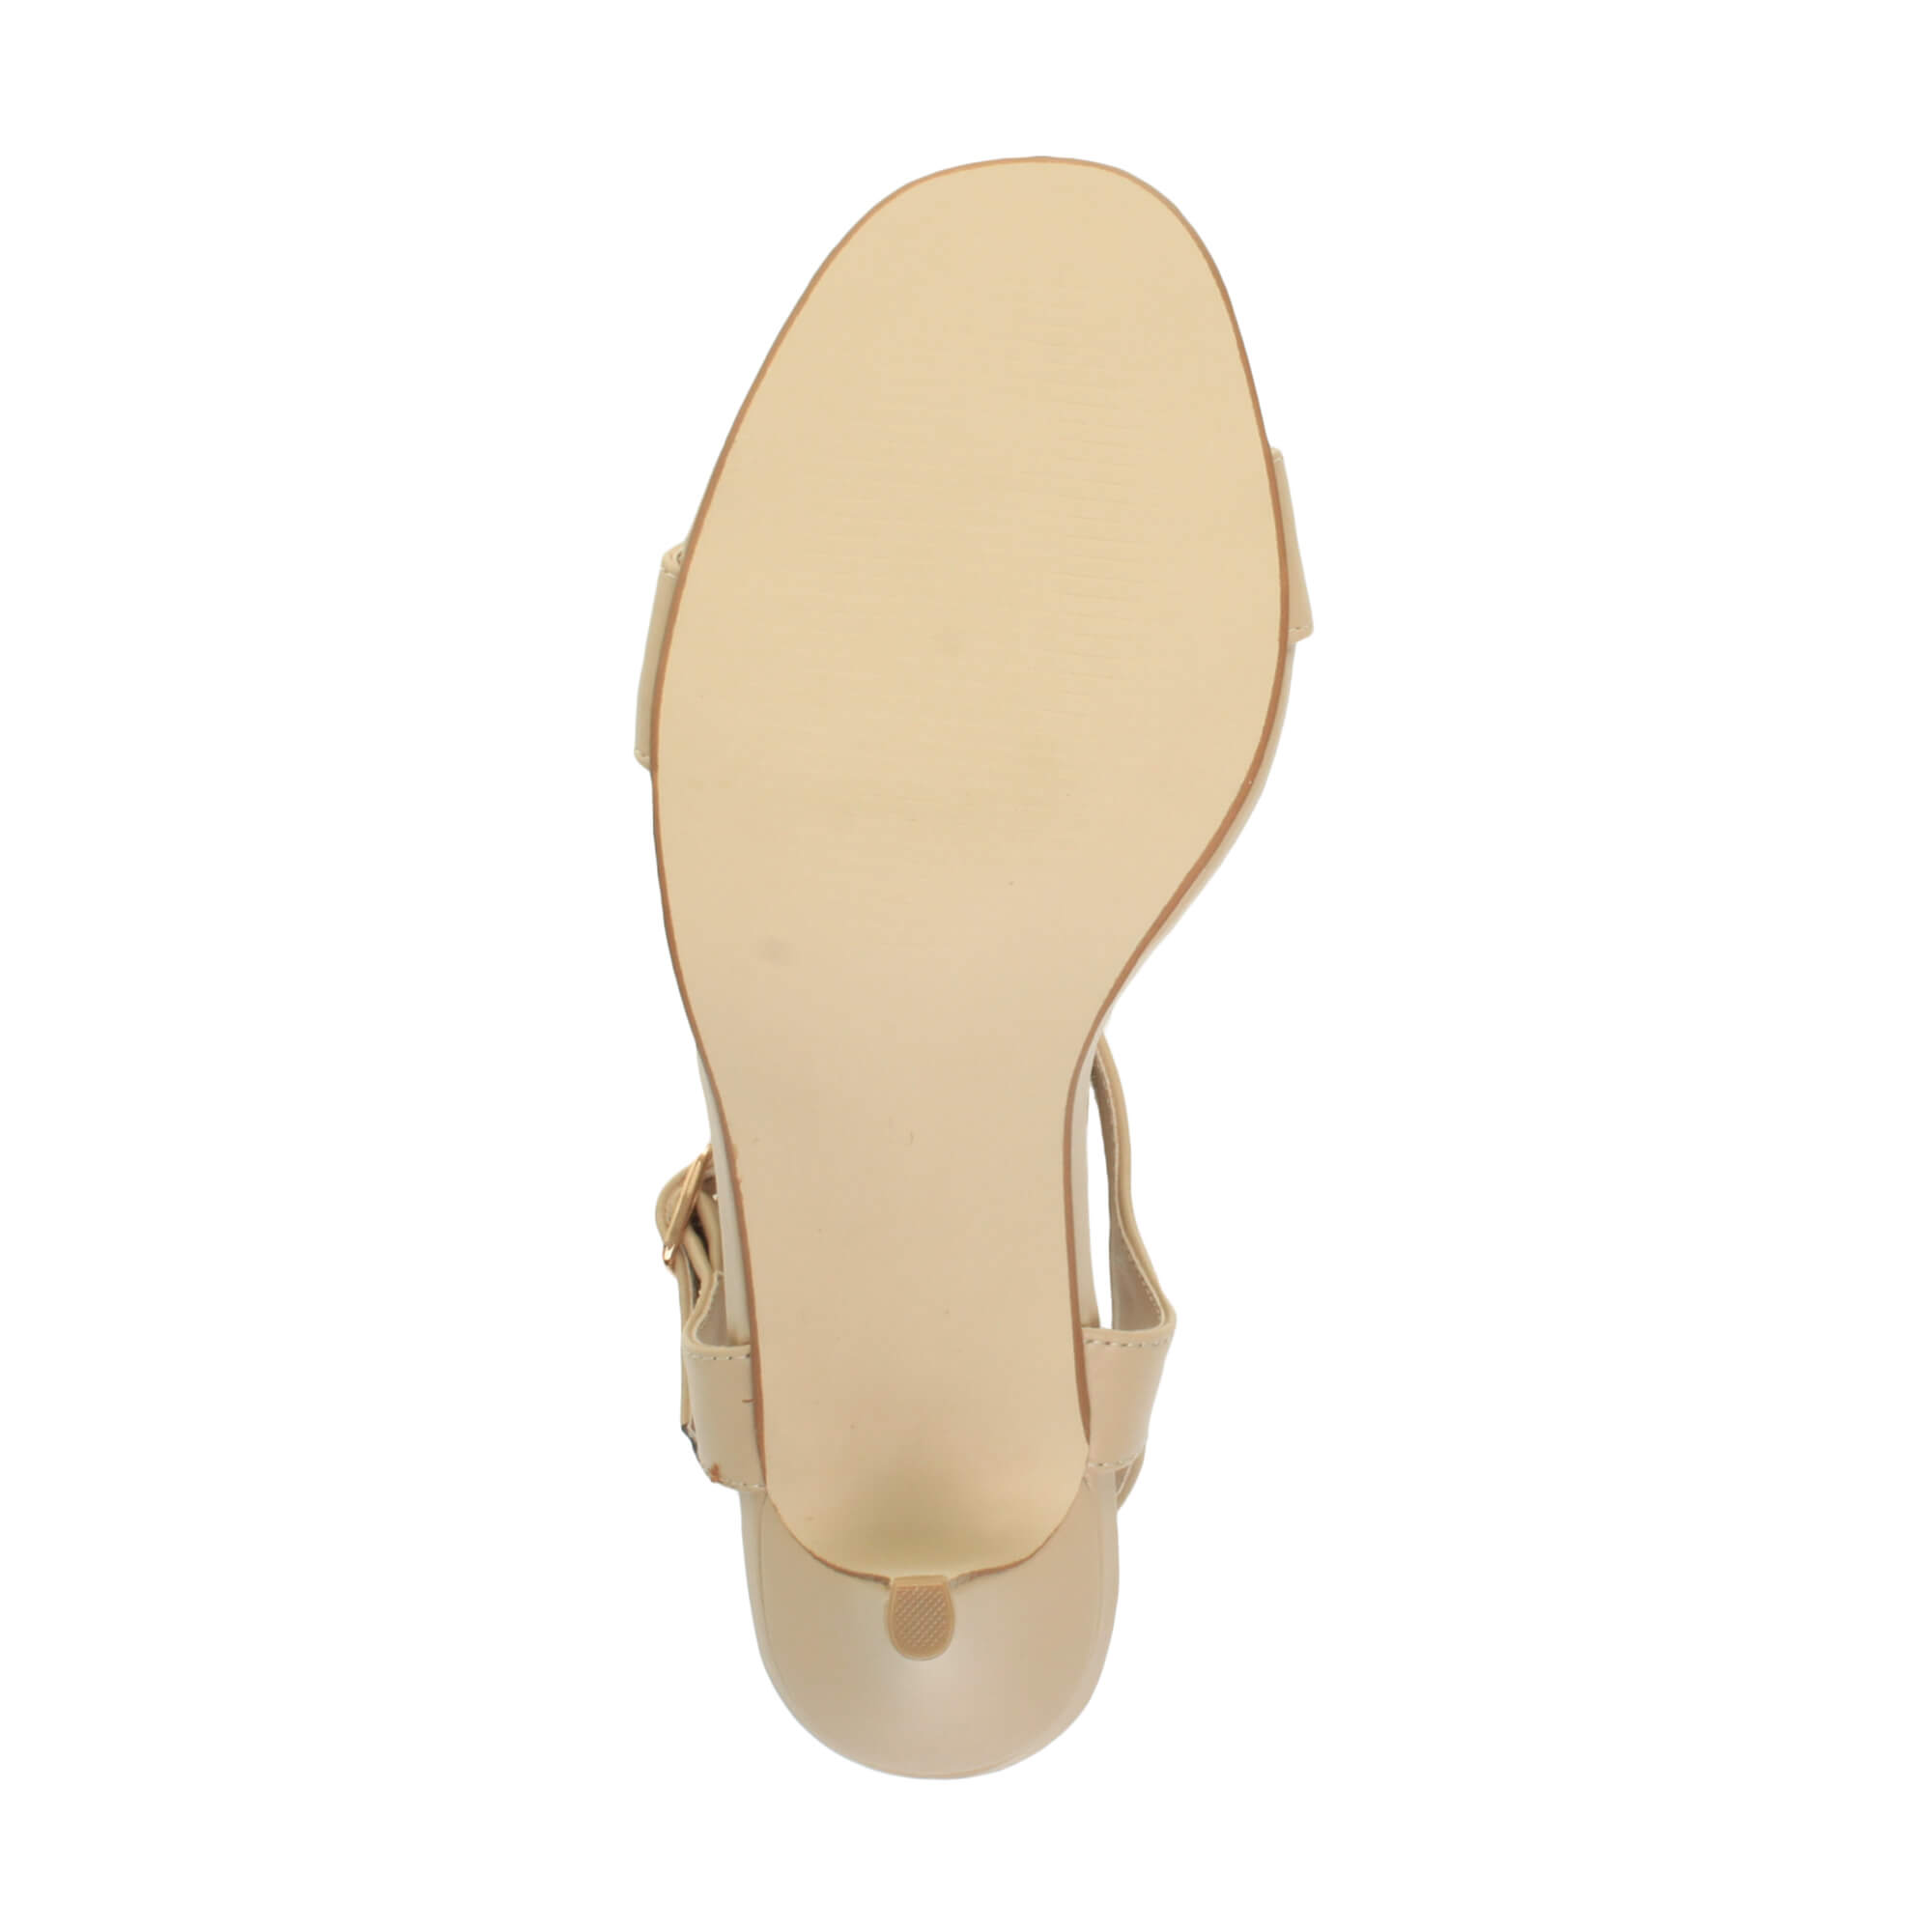 WOMENS-LADIES-HIGH-HEEL-BUCKLE-STRAPPY-BASIC-BARELY-THERE-SANDALS-SHOES-SIZE thumbnail 99